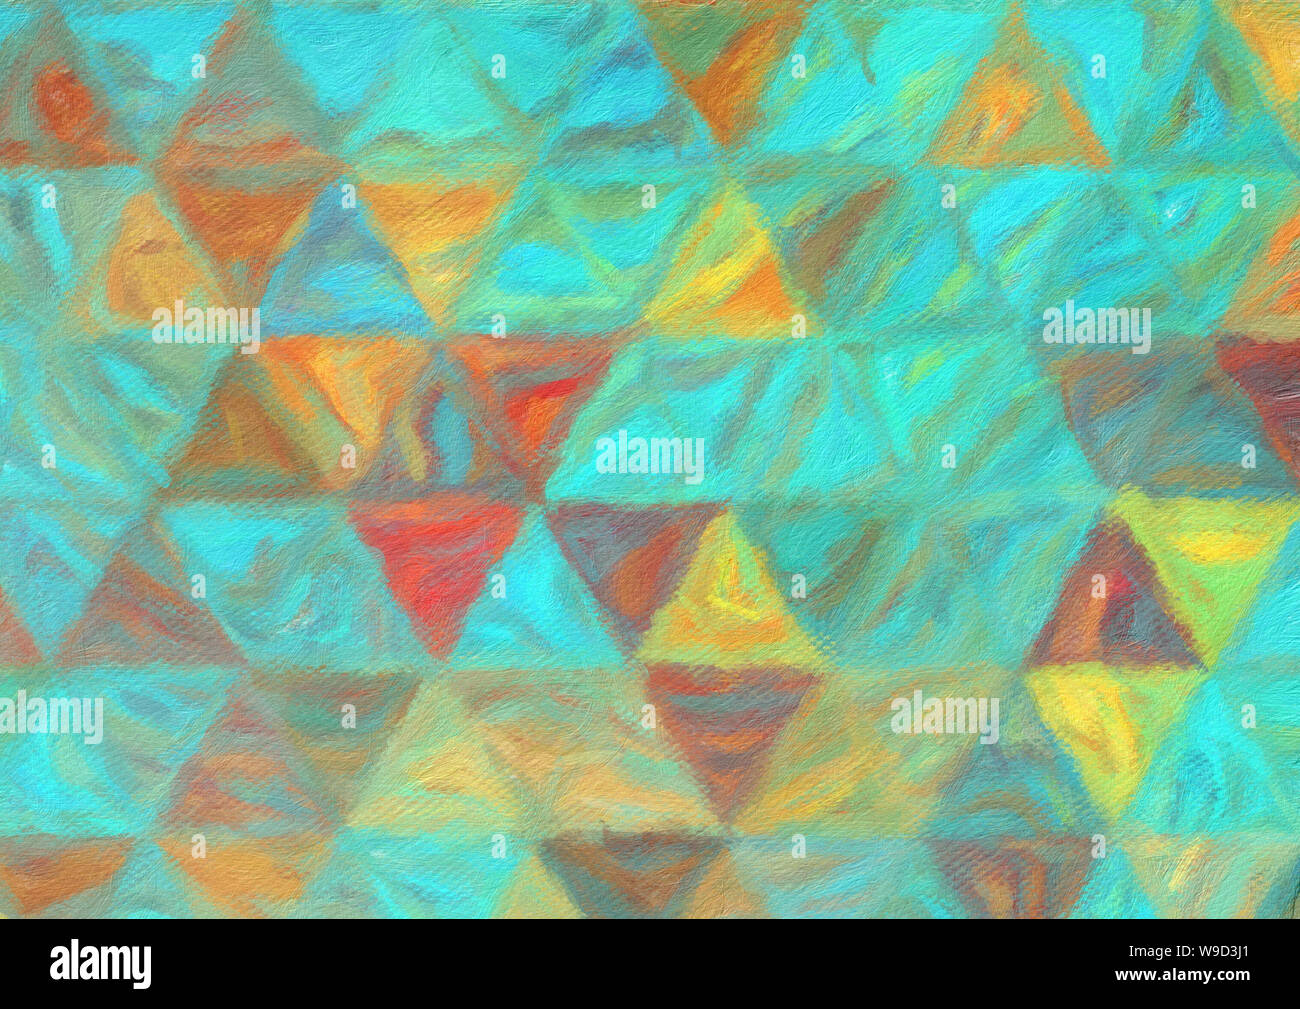 Abstract Interior Wall Art Print For Decorate Everything